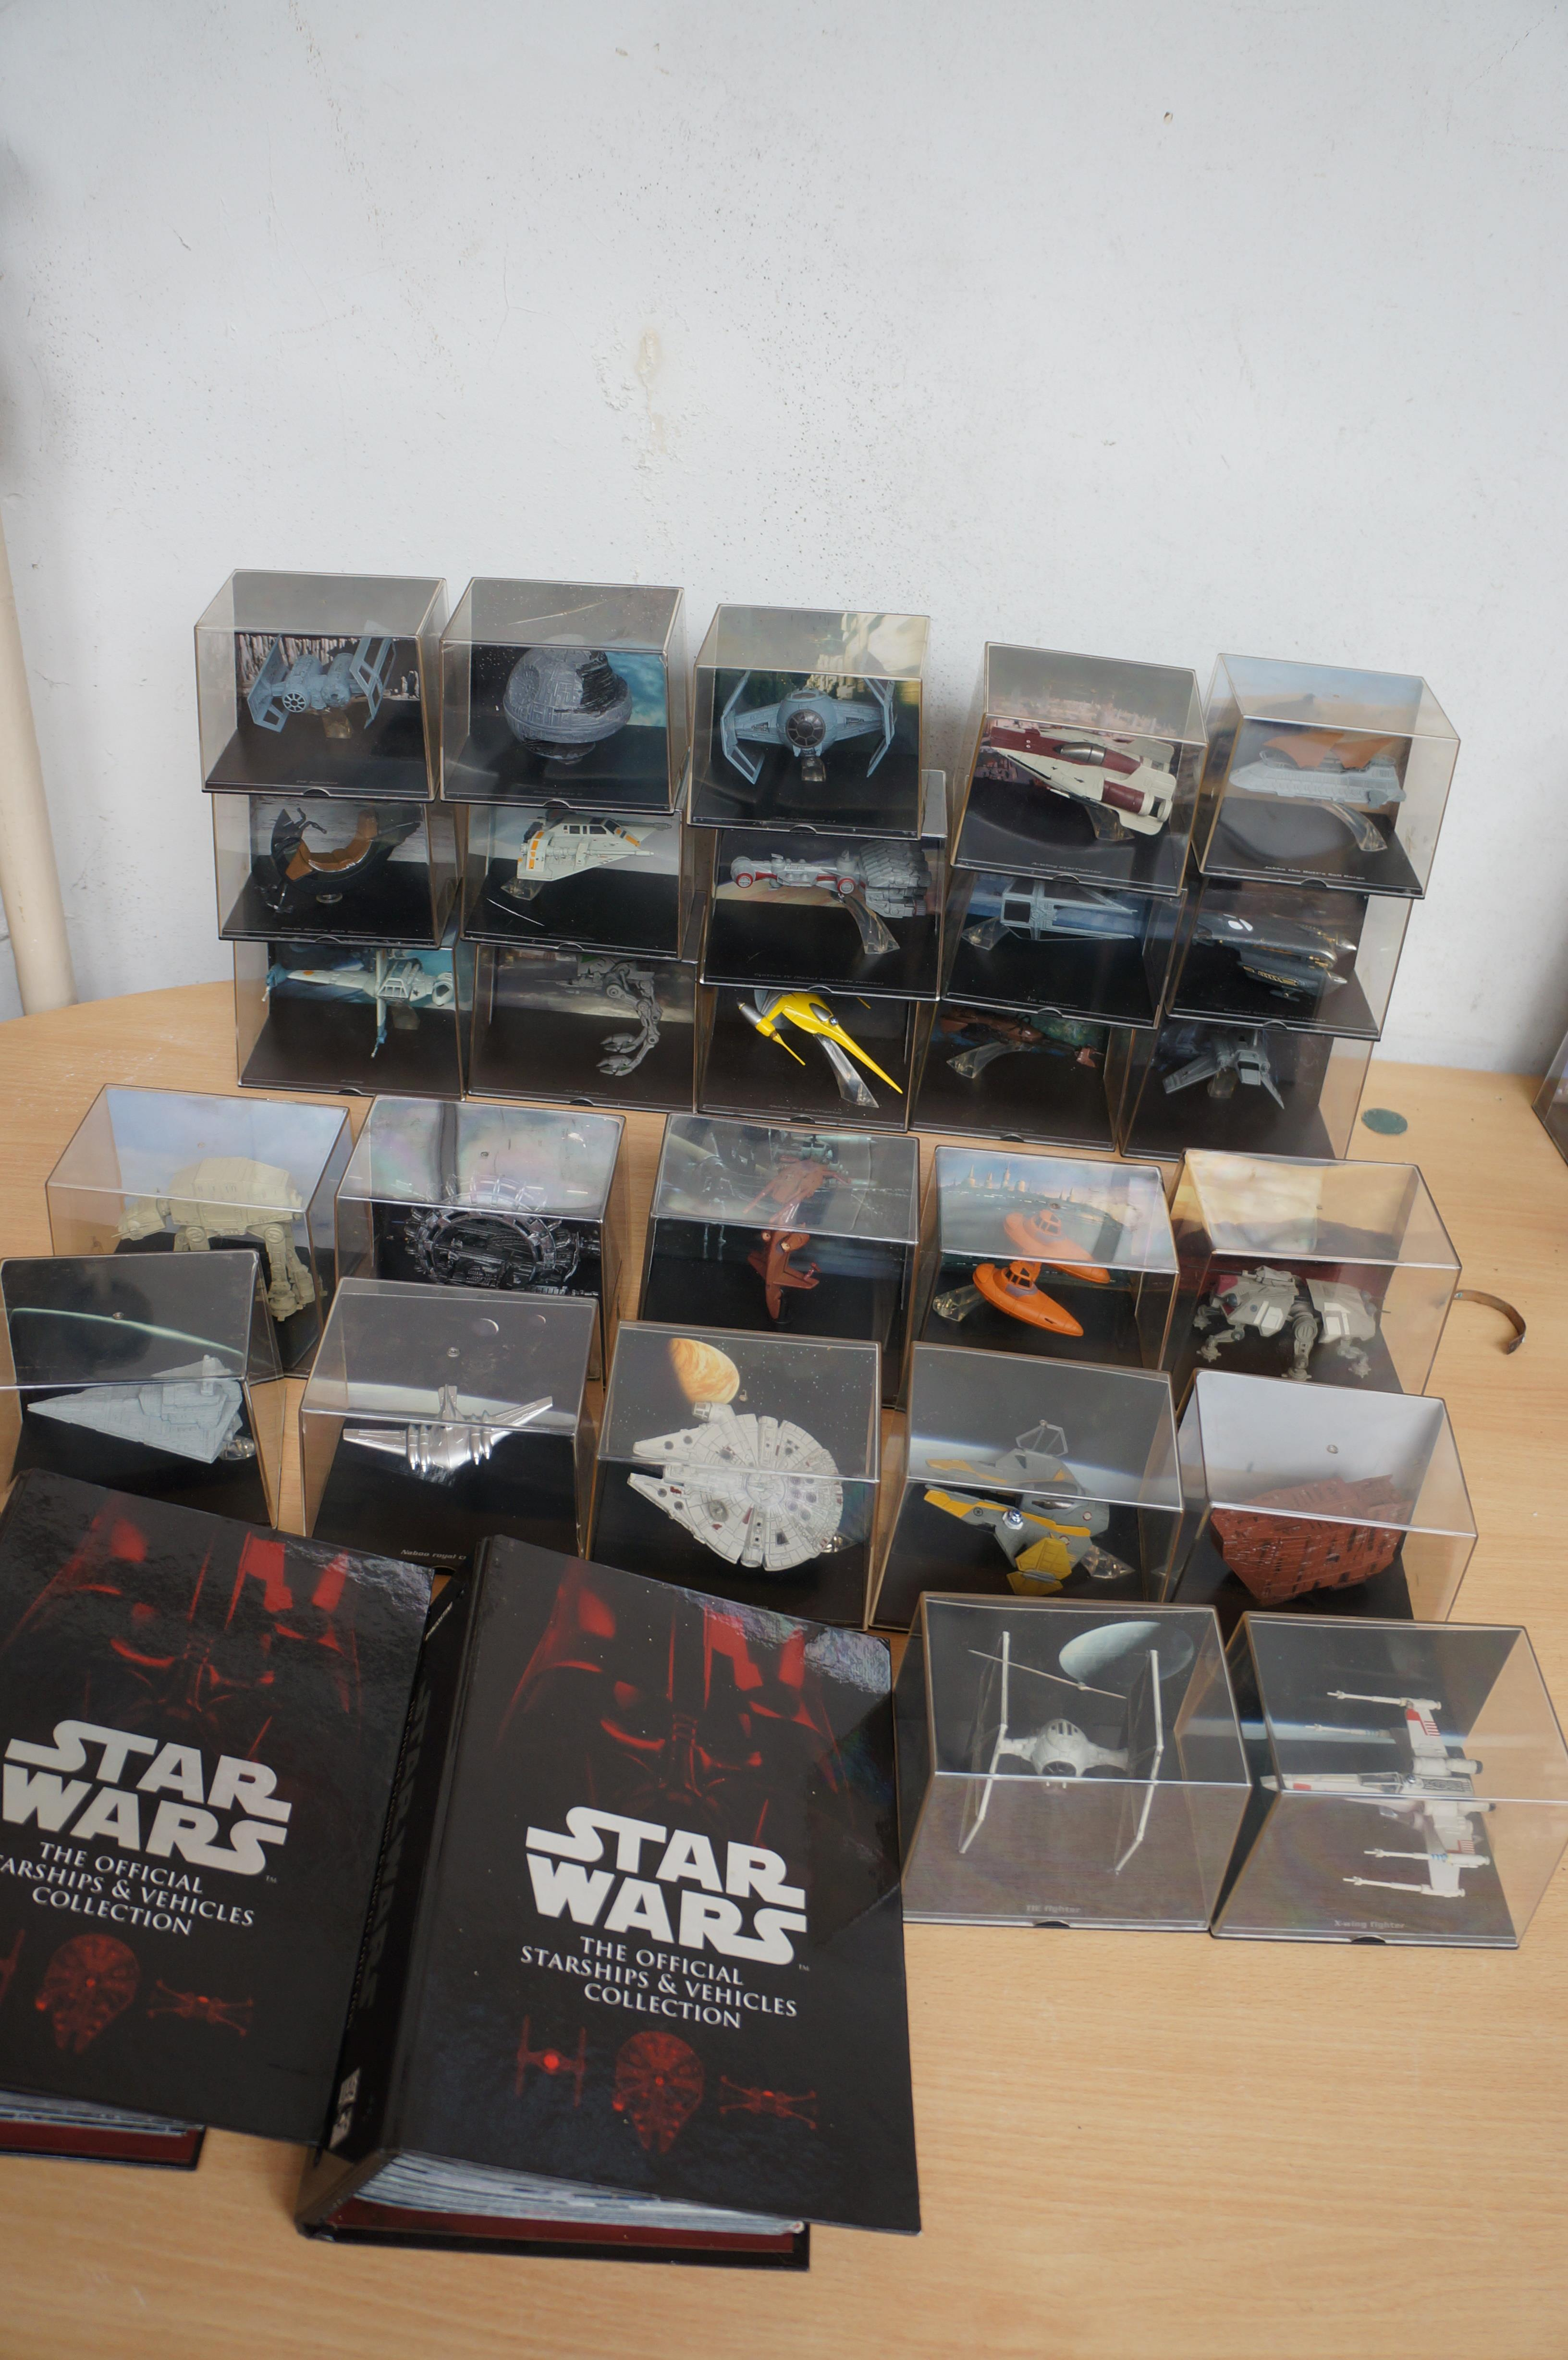 27 Star Wars Models to include Magazines